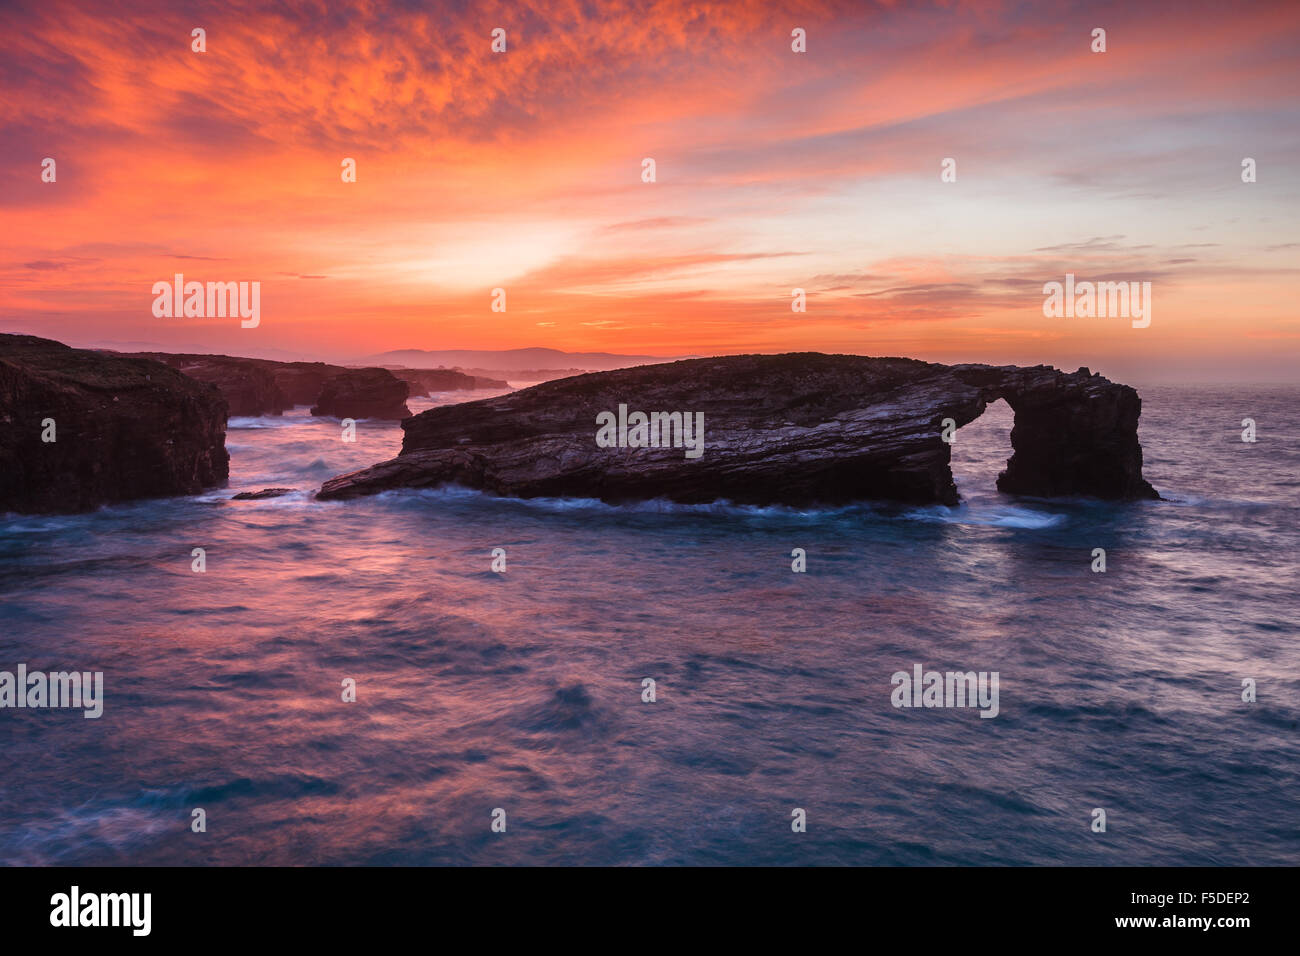 'As Catedrais' / 'Las Catedrales' Beach by sunset, in Ribadeo, Lugo. Galicia, Spain. - Stock Image